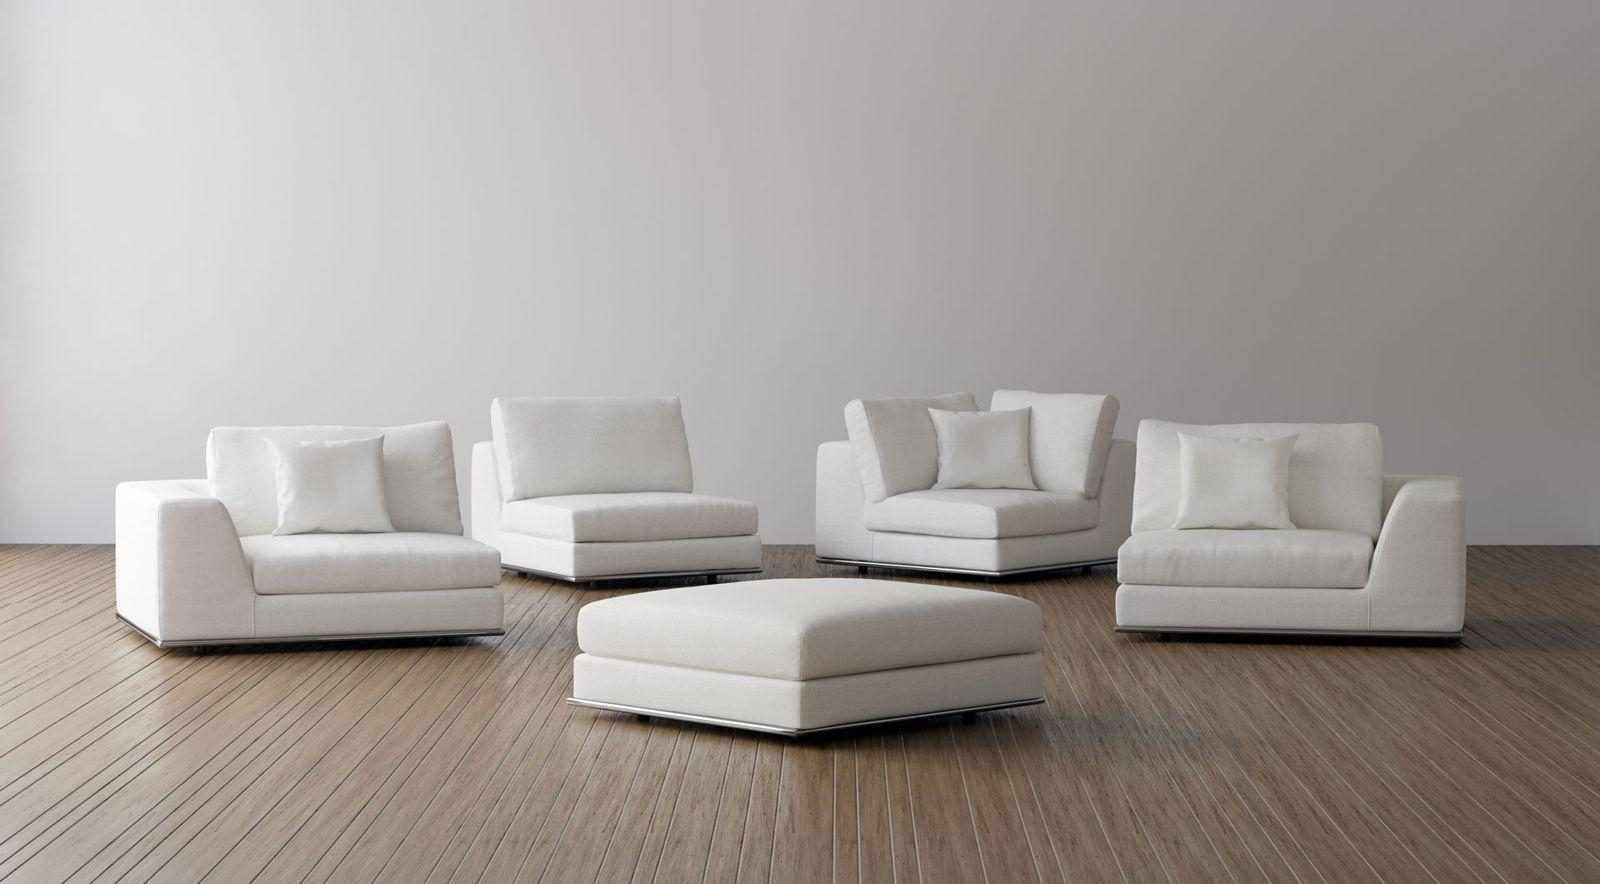 Perry Preconfigured Three Seat Sofa With Ottomanmodloft Inside Mod Sofas (View 3 of 20)